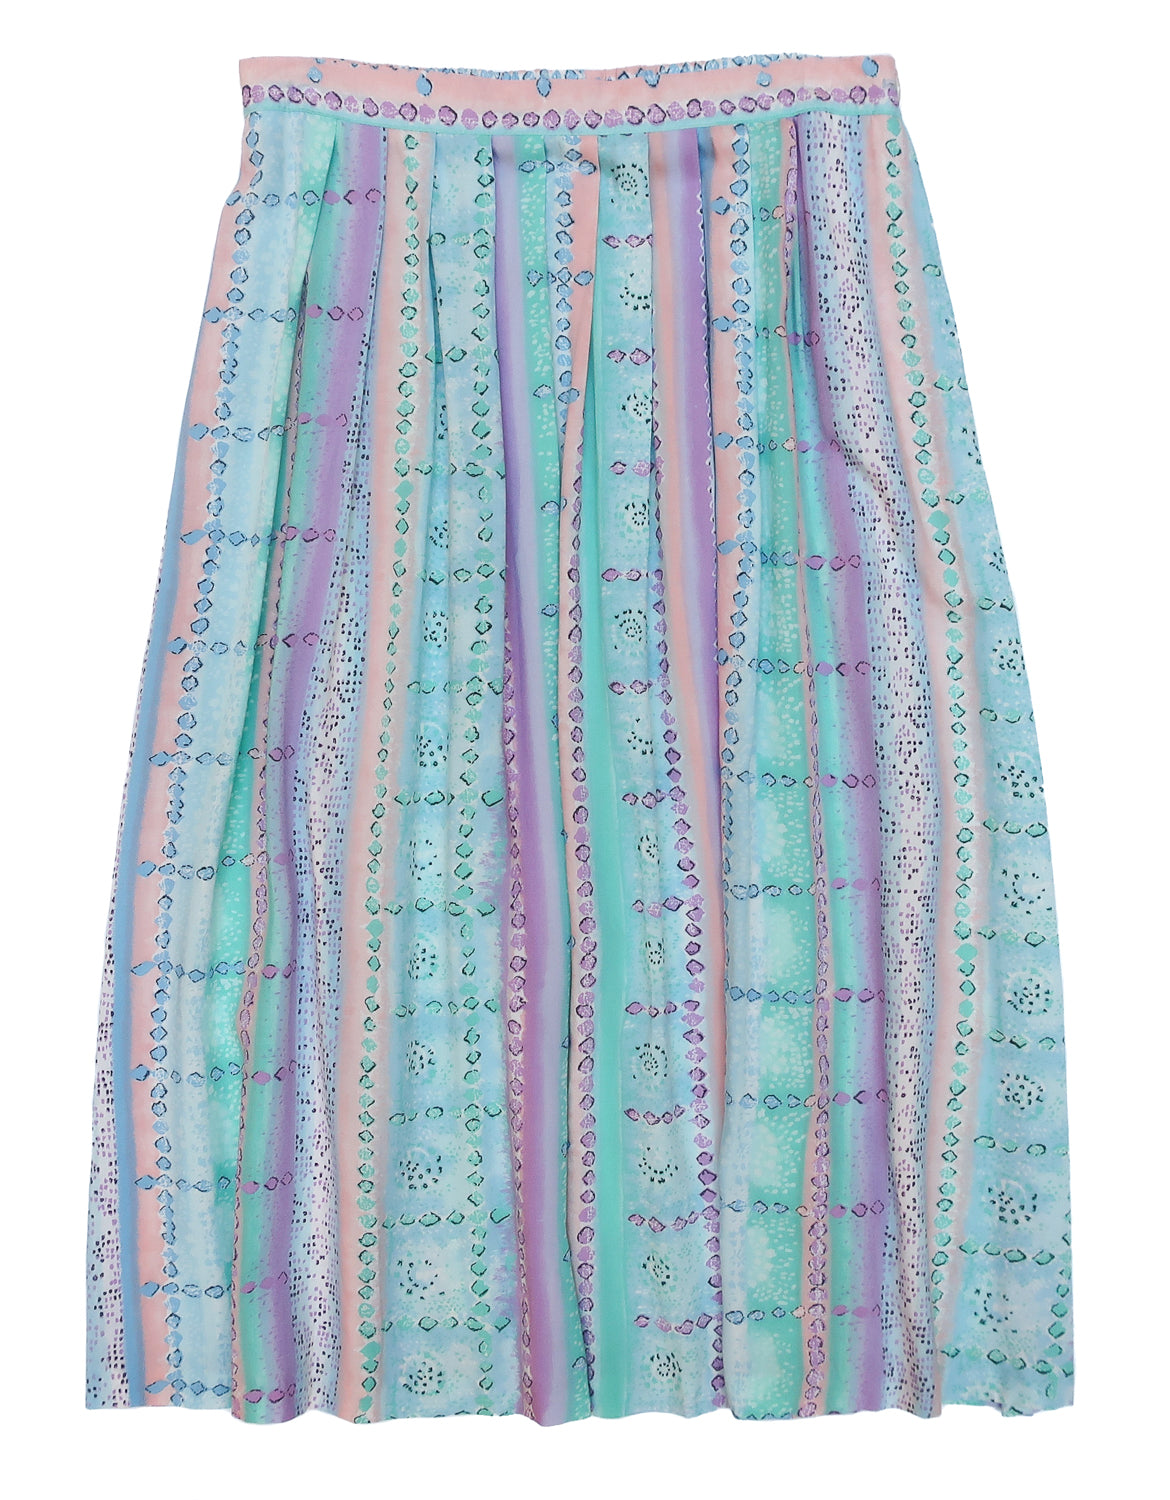 Second Room Vintage Clothing. Vintage 90s pastel pink, peach, green, blue and purple abstract pattern midi skirt. Waistband in the front, with elastic in the back, pleated with no pockets, and button closure on one side. Free North American shipping on all orders.